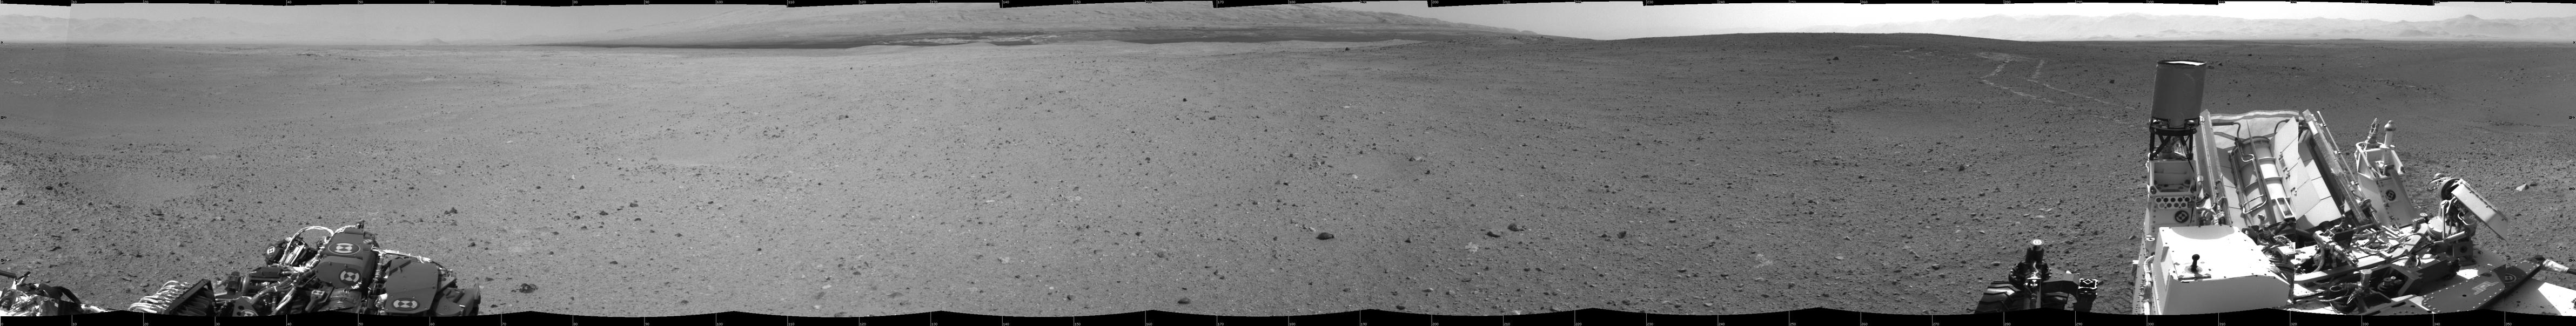 Looking Back at Tracks from Sol 24 Drive